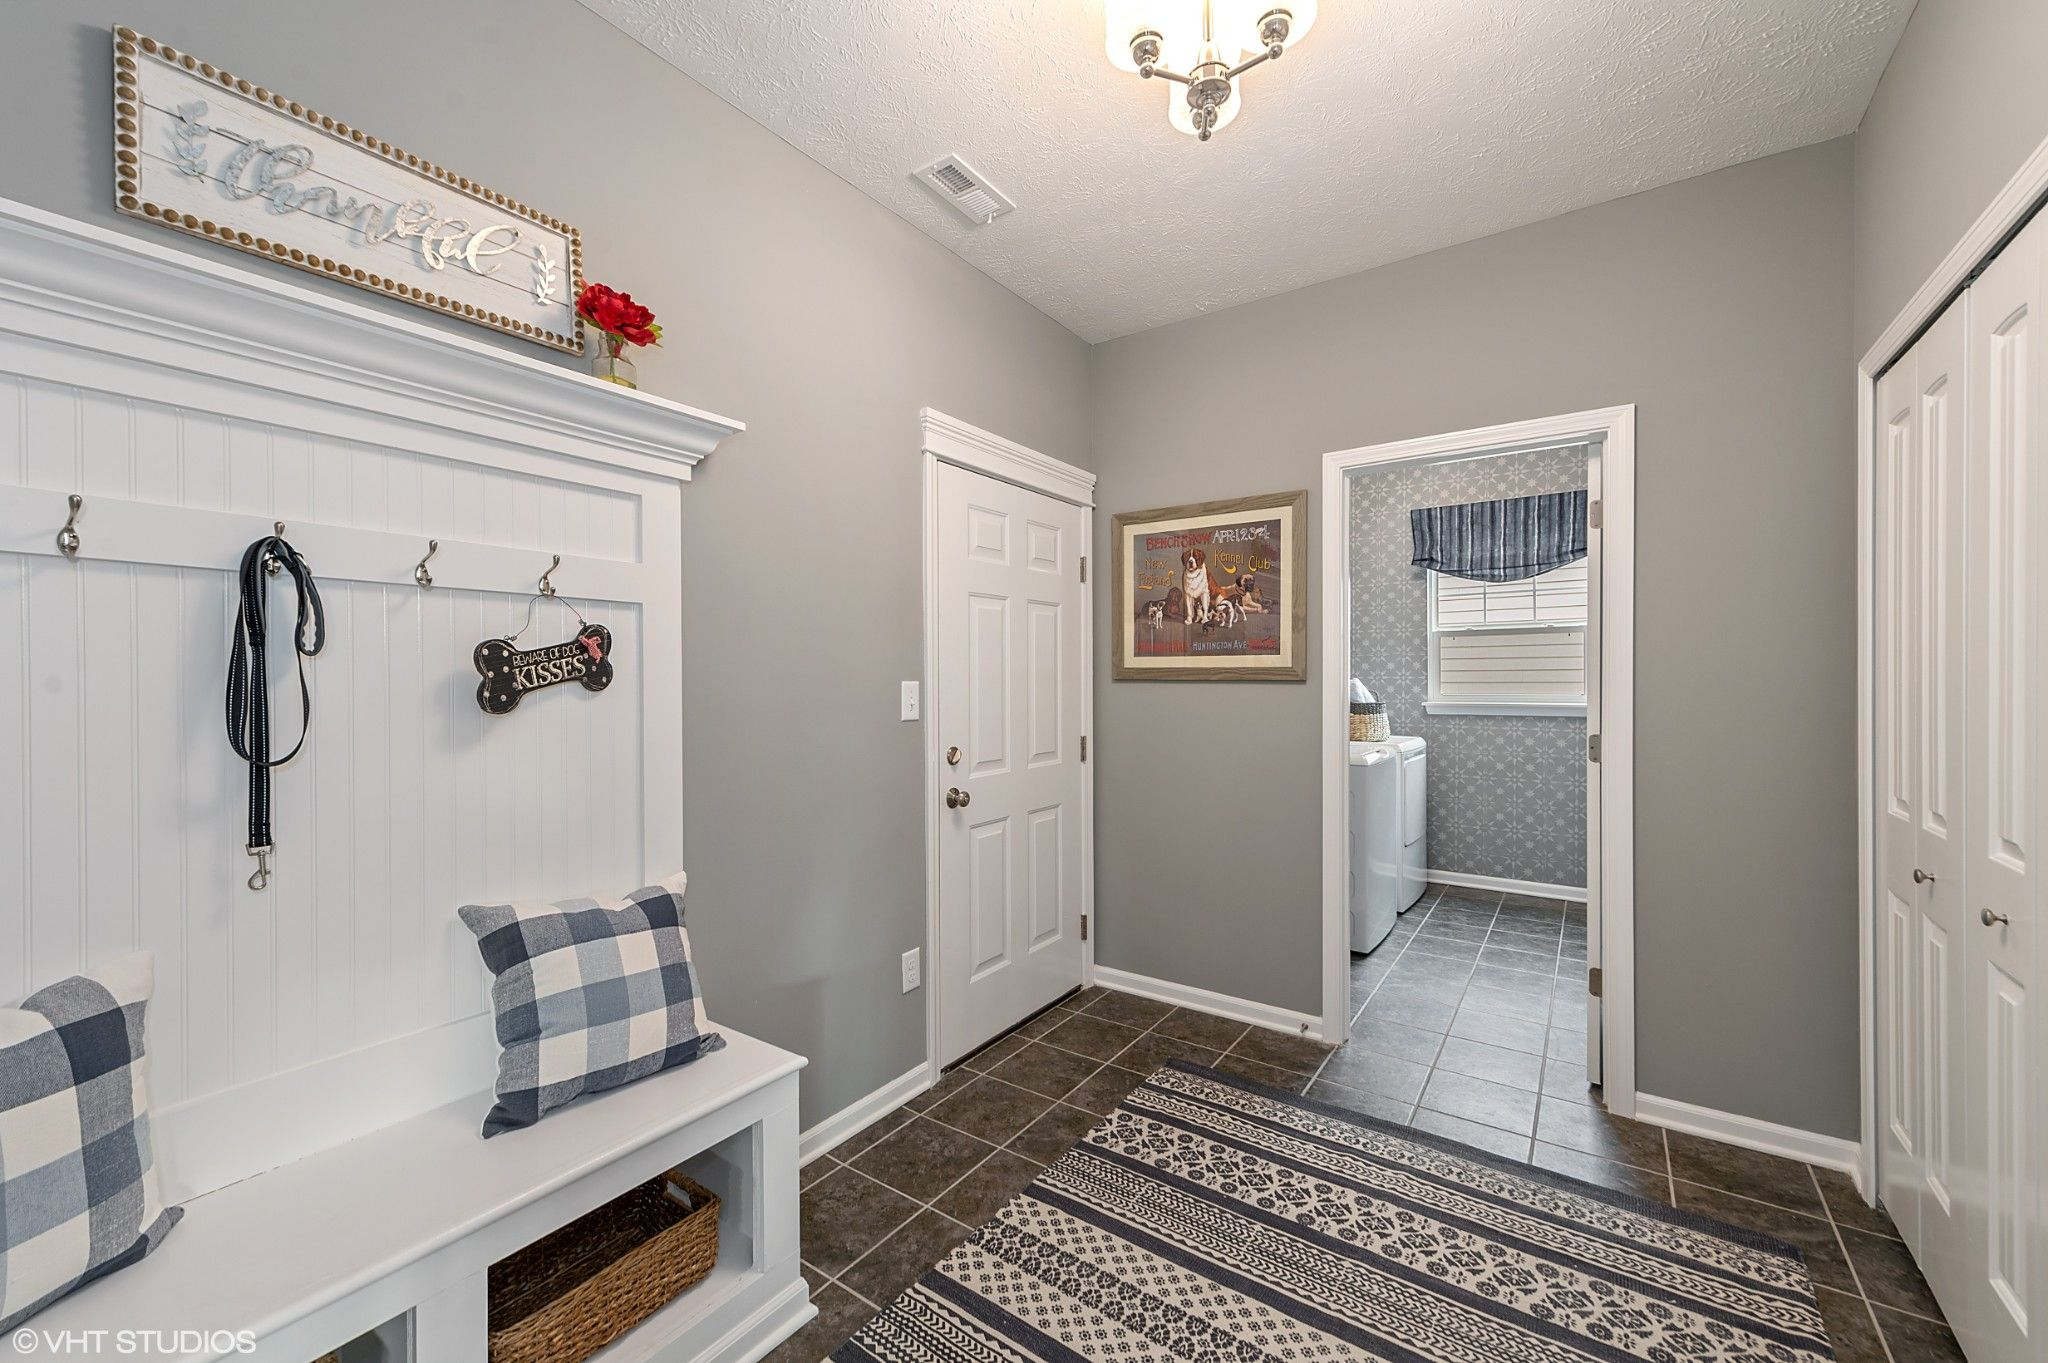 Living Area featured in the Huntington By Olthof Homes in Fort Wayne, IN